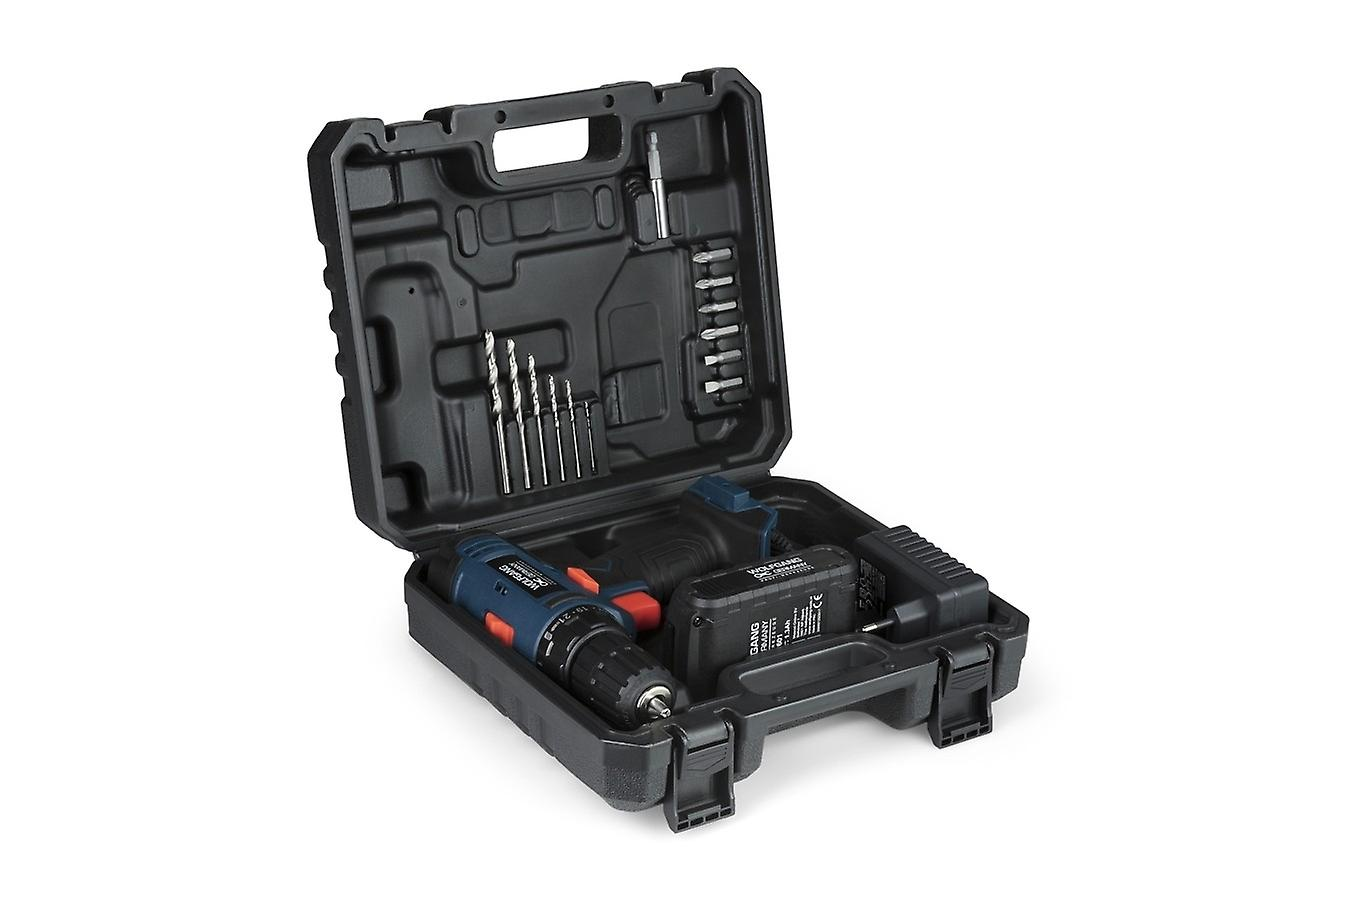 WOLFGANG Cordless Screwdriver 20V, Cordless Drill Set Cordless Drill Set, 10mm, Li-ion Battery 1500mAh, 1H Quick Charge, LED Function, Max Torque 26Nm, 21+1 Steps, With Drill Set, Bitset and Case